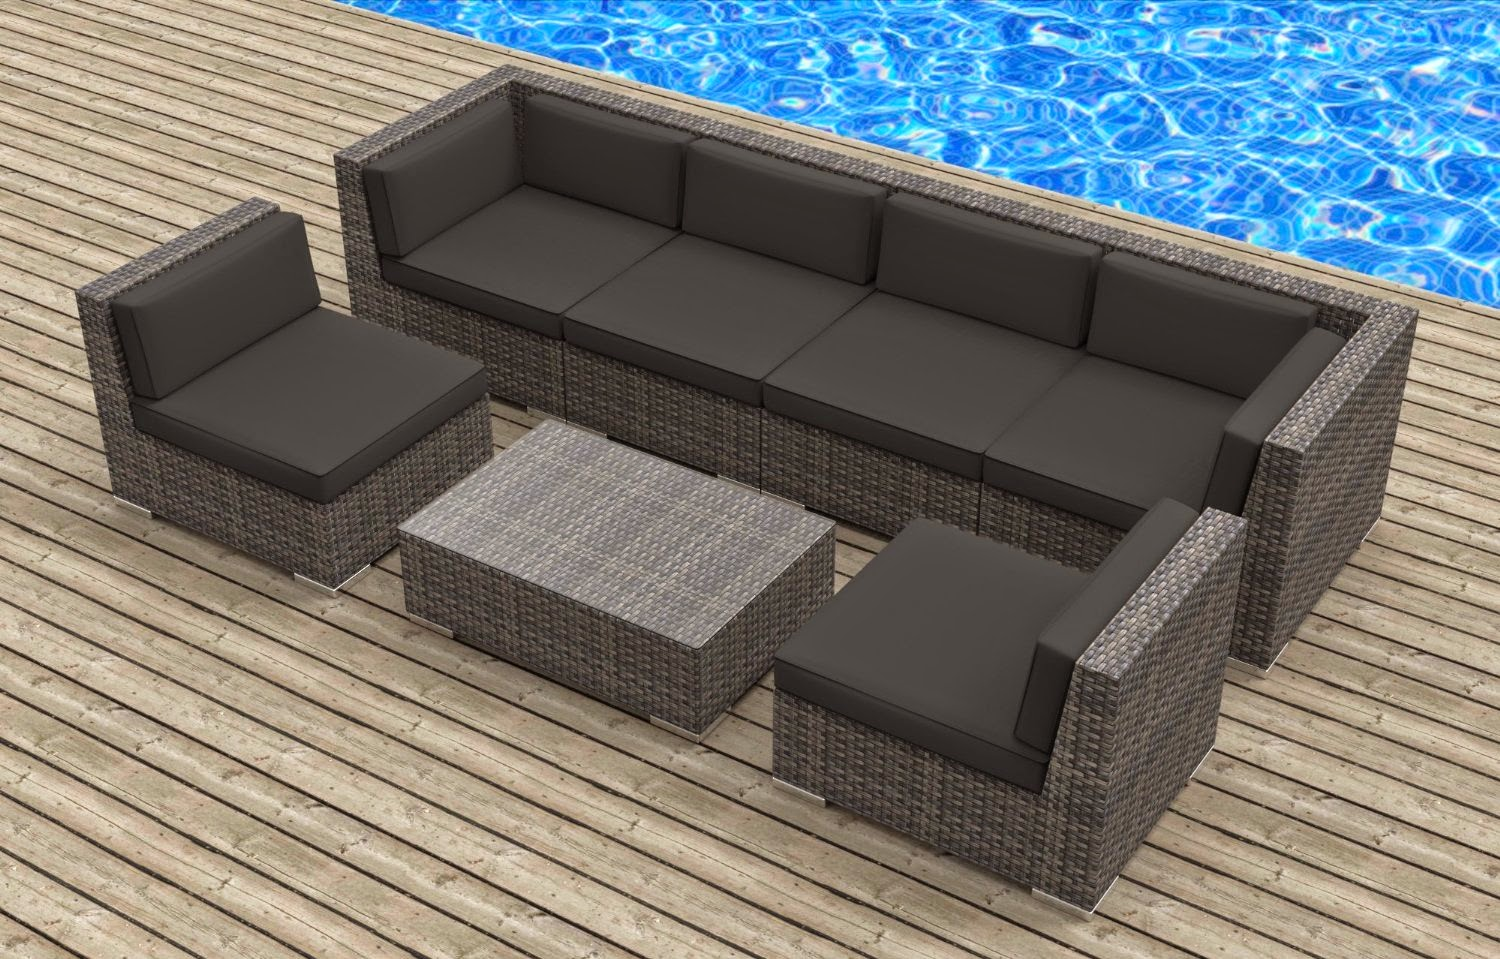 Urban furnishing modern outdoor backyard wicker rattan for Outdoor furniture modern